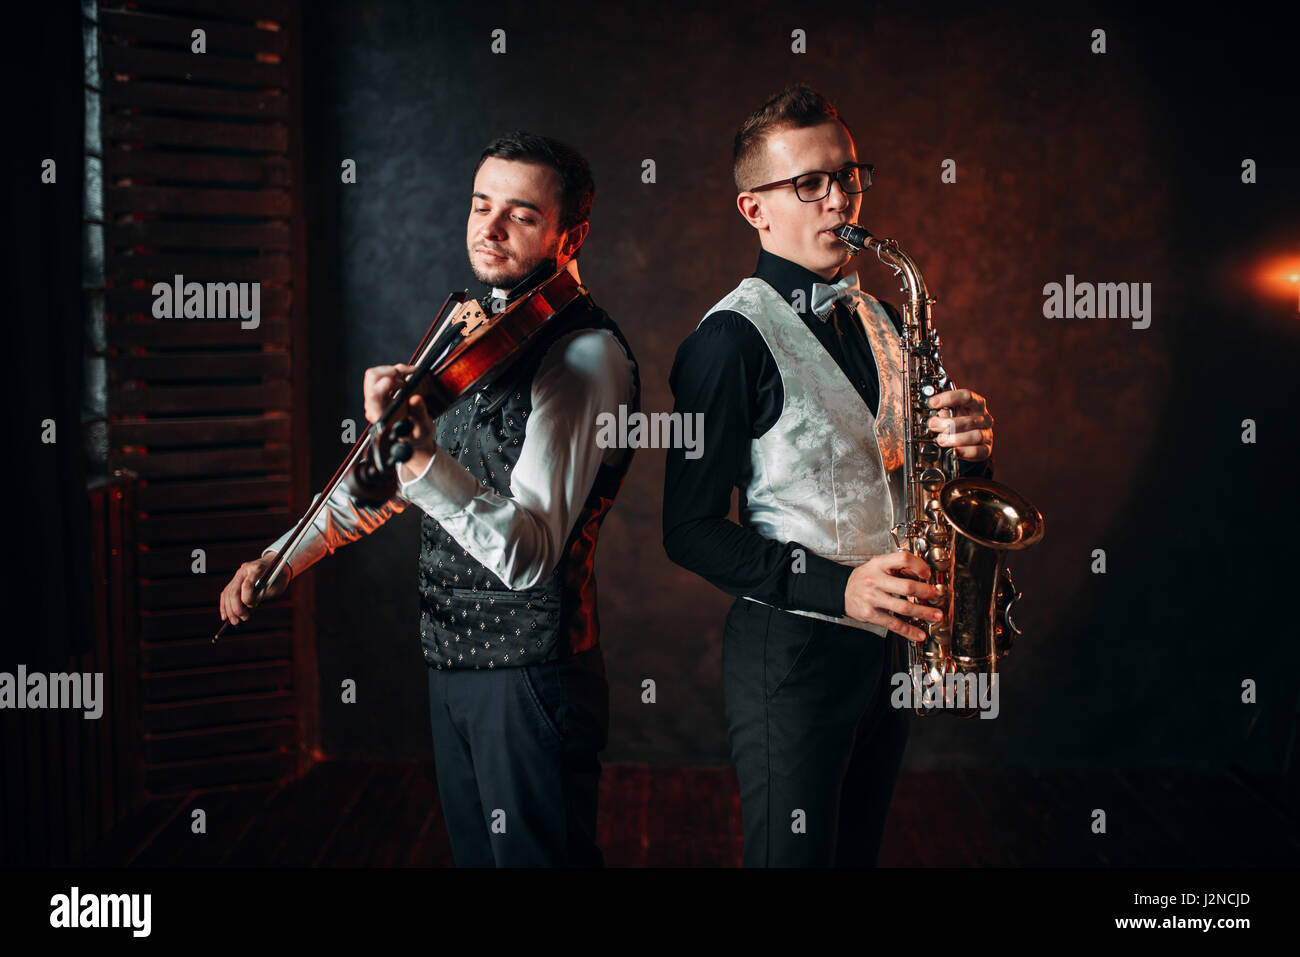 Saxophonist and violinst playing classical melody, musical duet. Jazz-man and fiddler - Stock Image